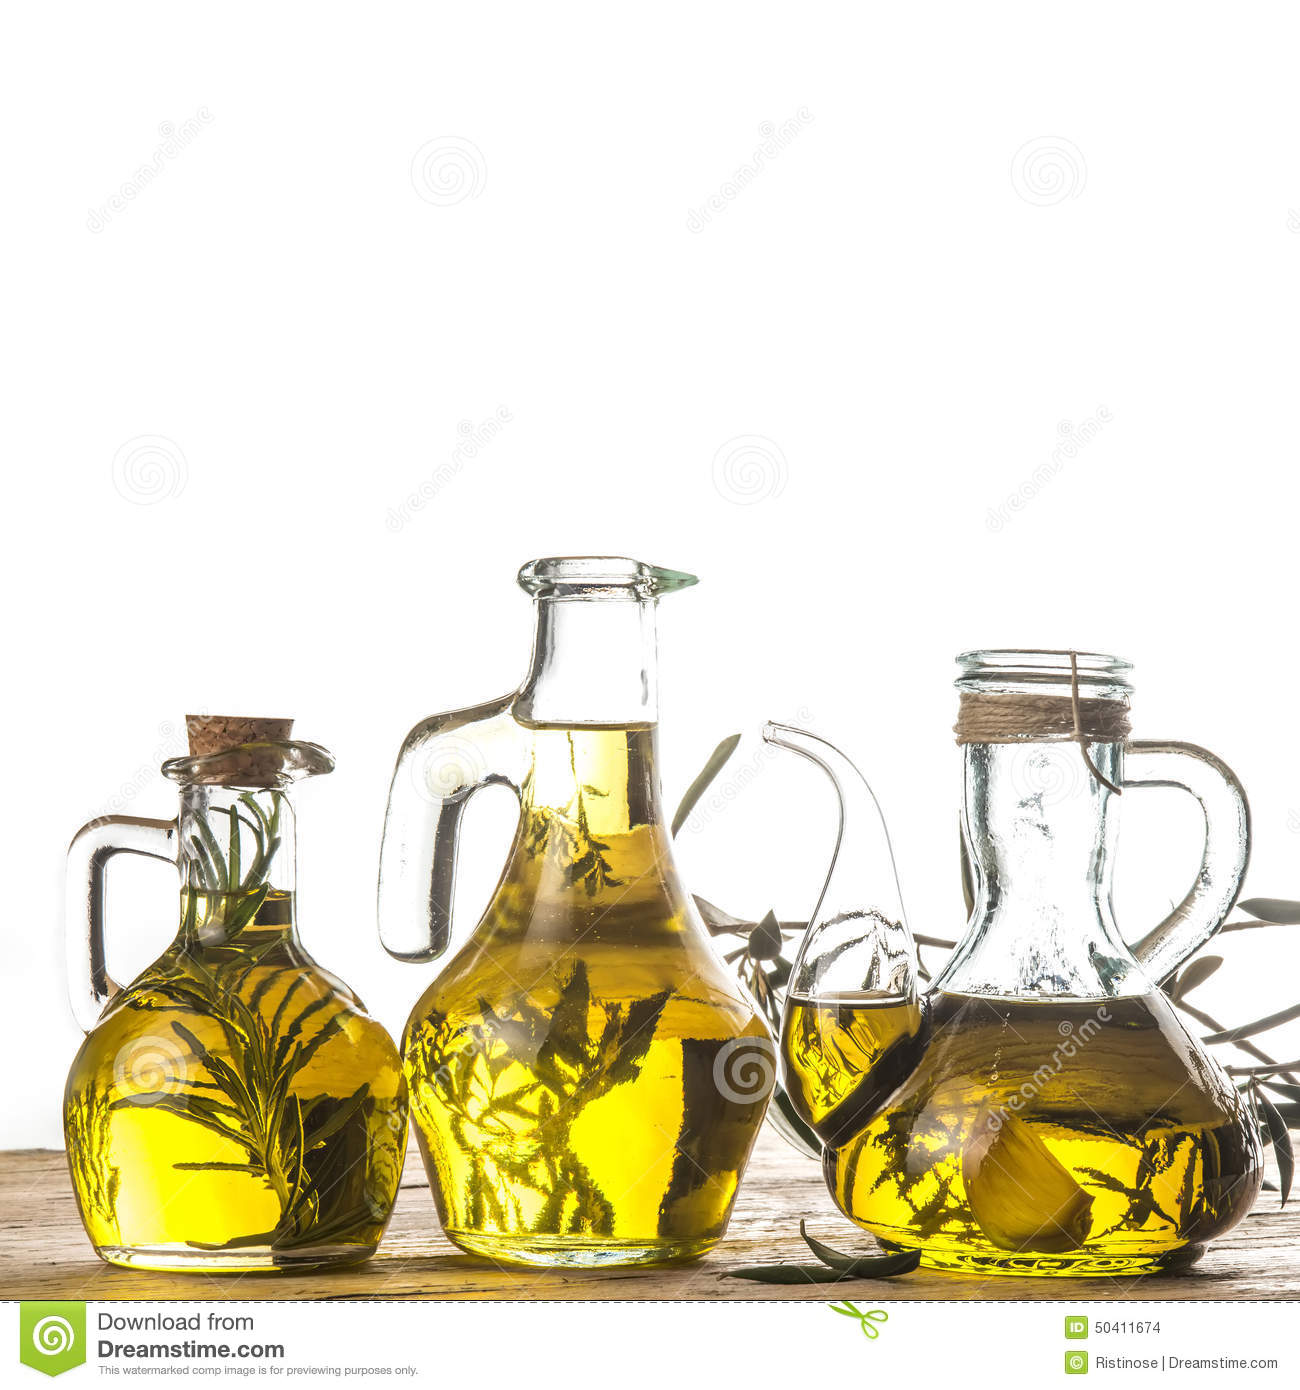 Rosemary, garlic and herbs infused olive oil in rustic glass bottles.